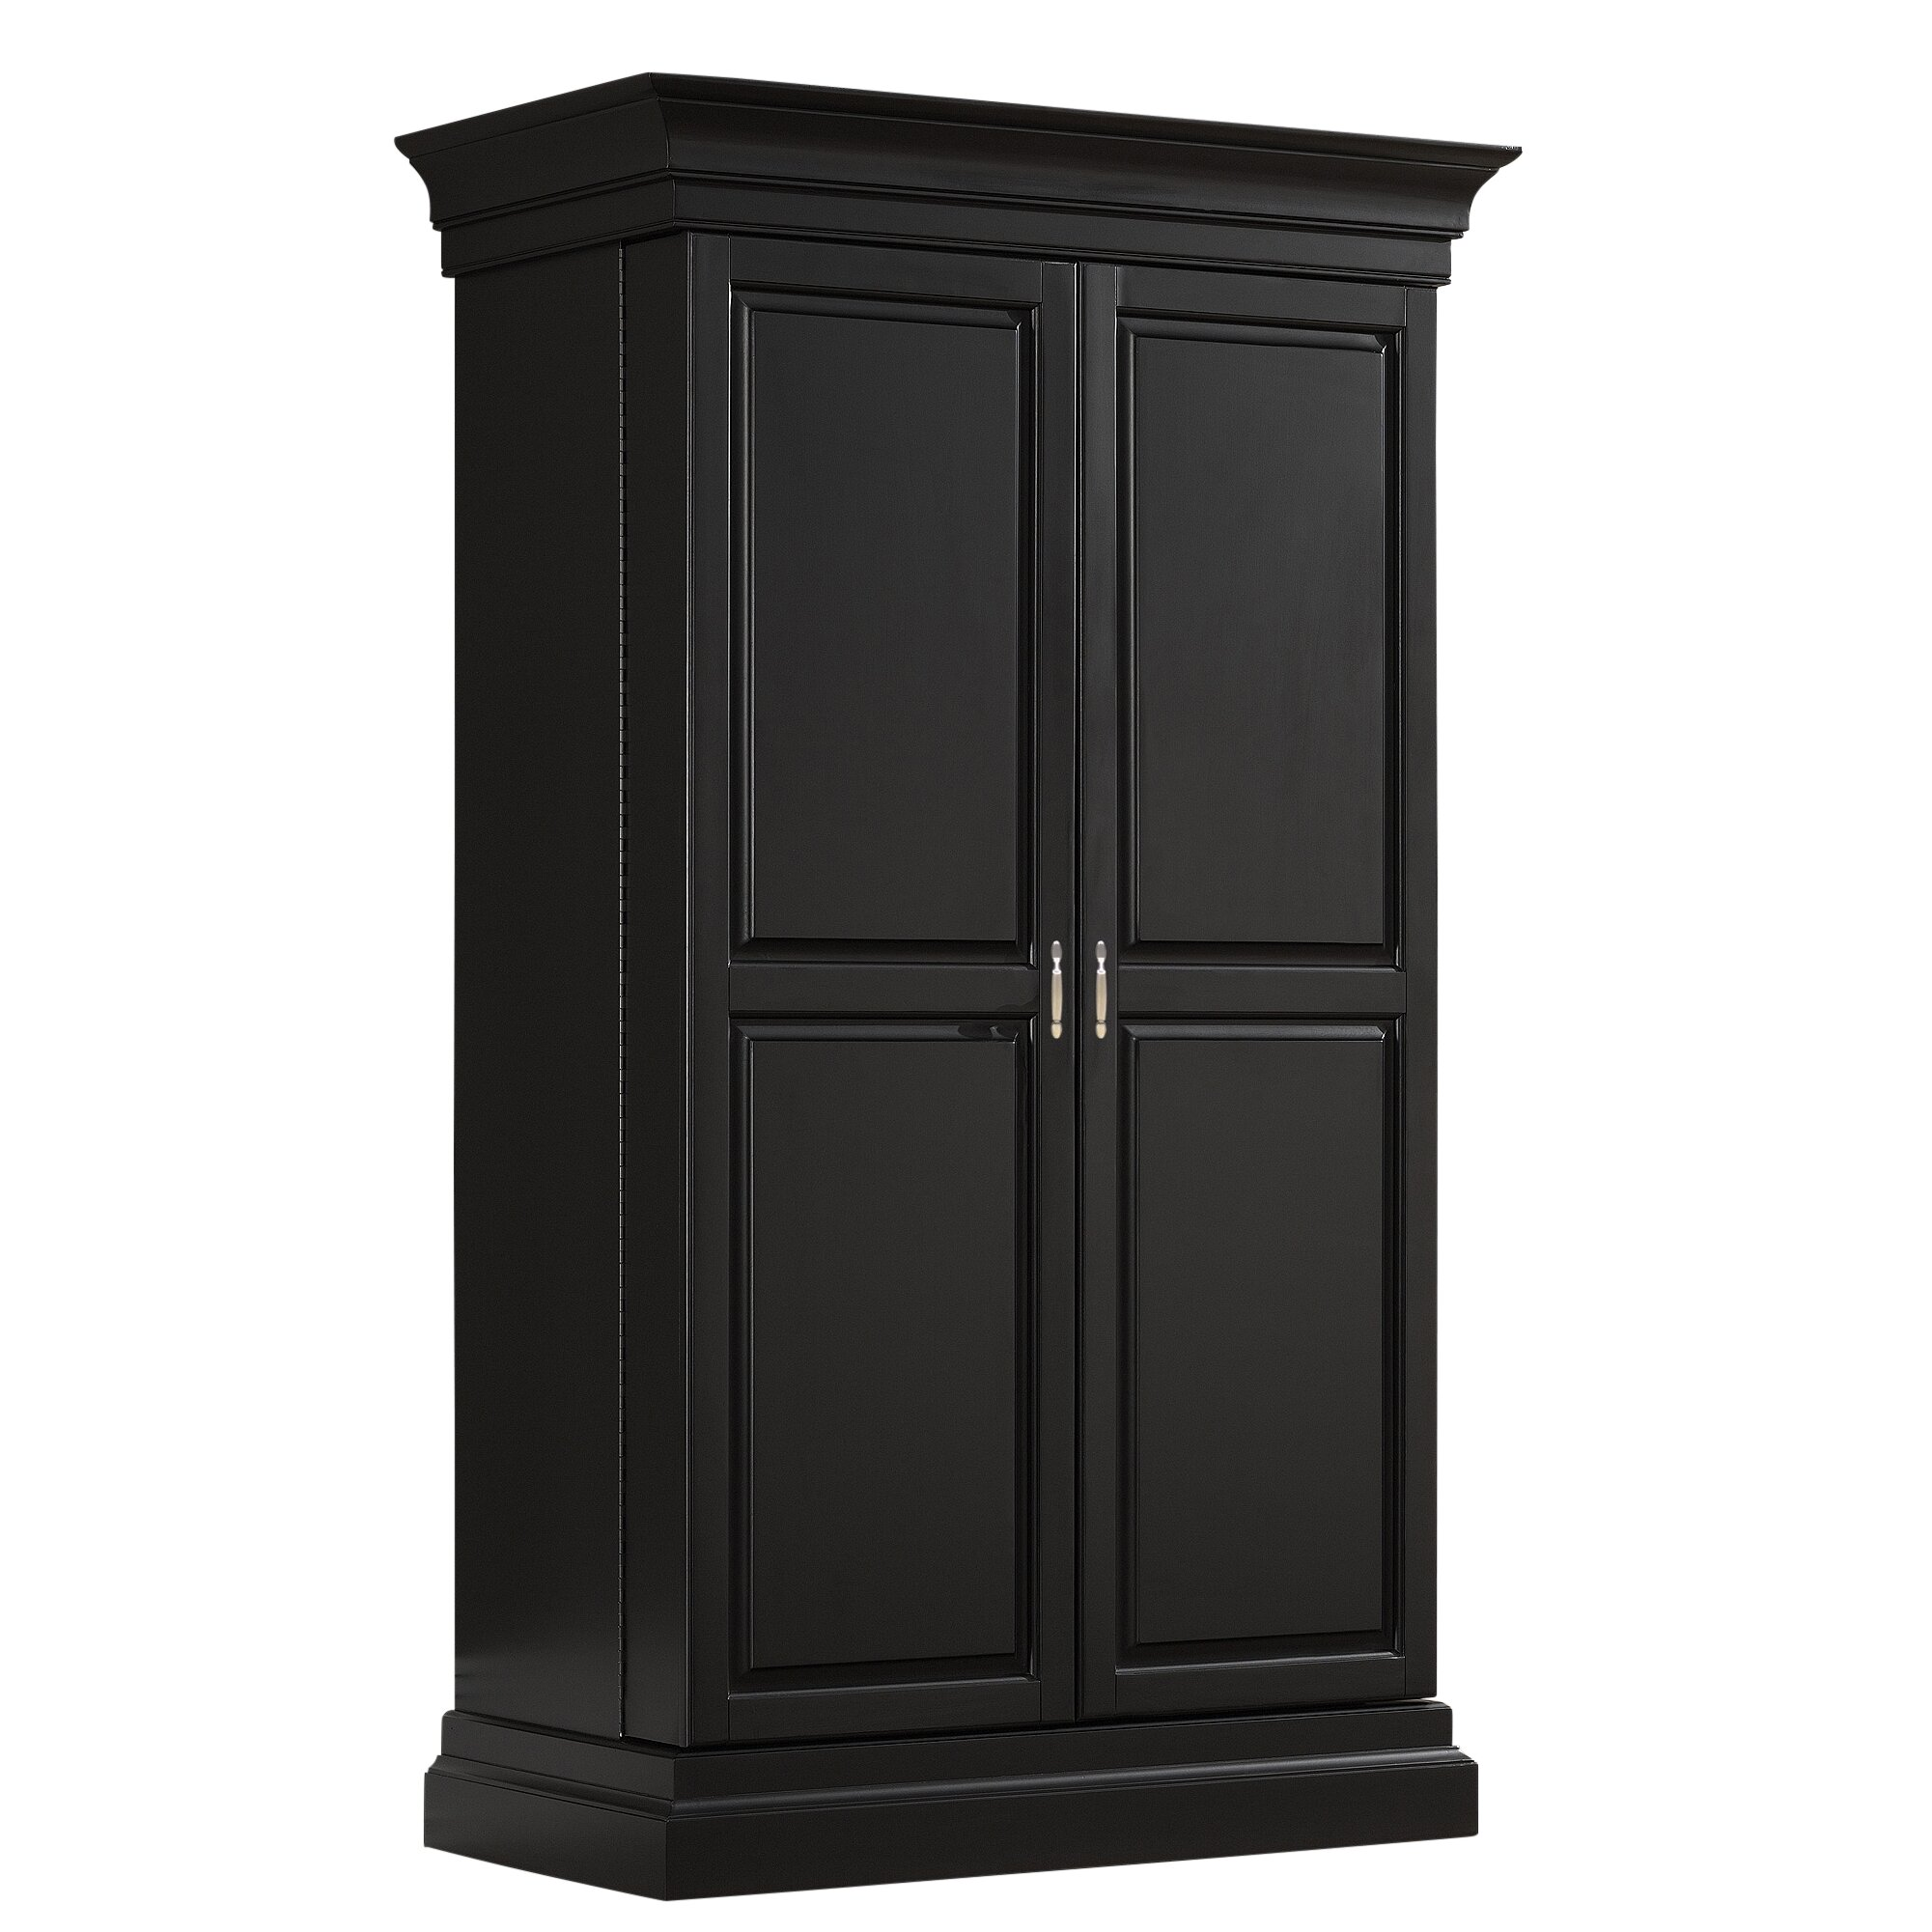 Darby Home Co Arsenault Bar Cabinet with Wine Storage & Reviews ...